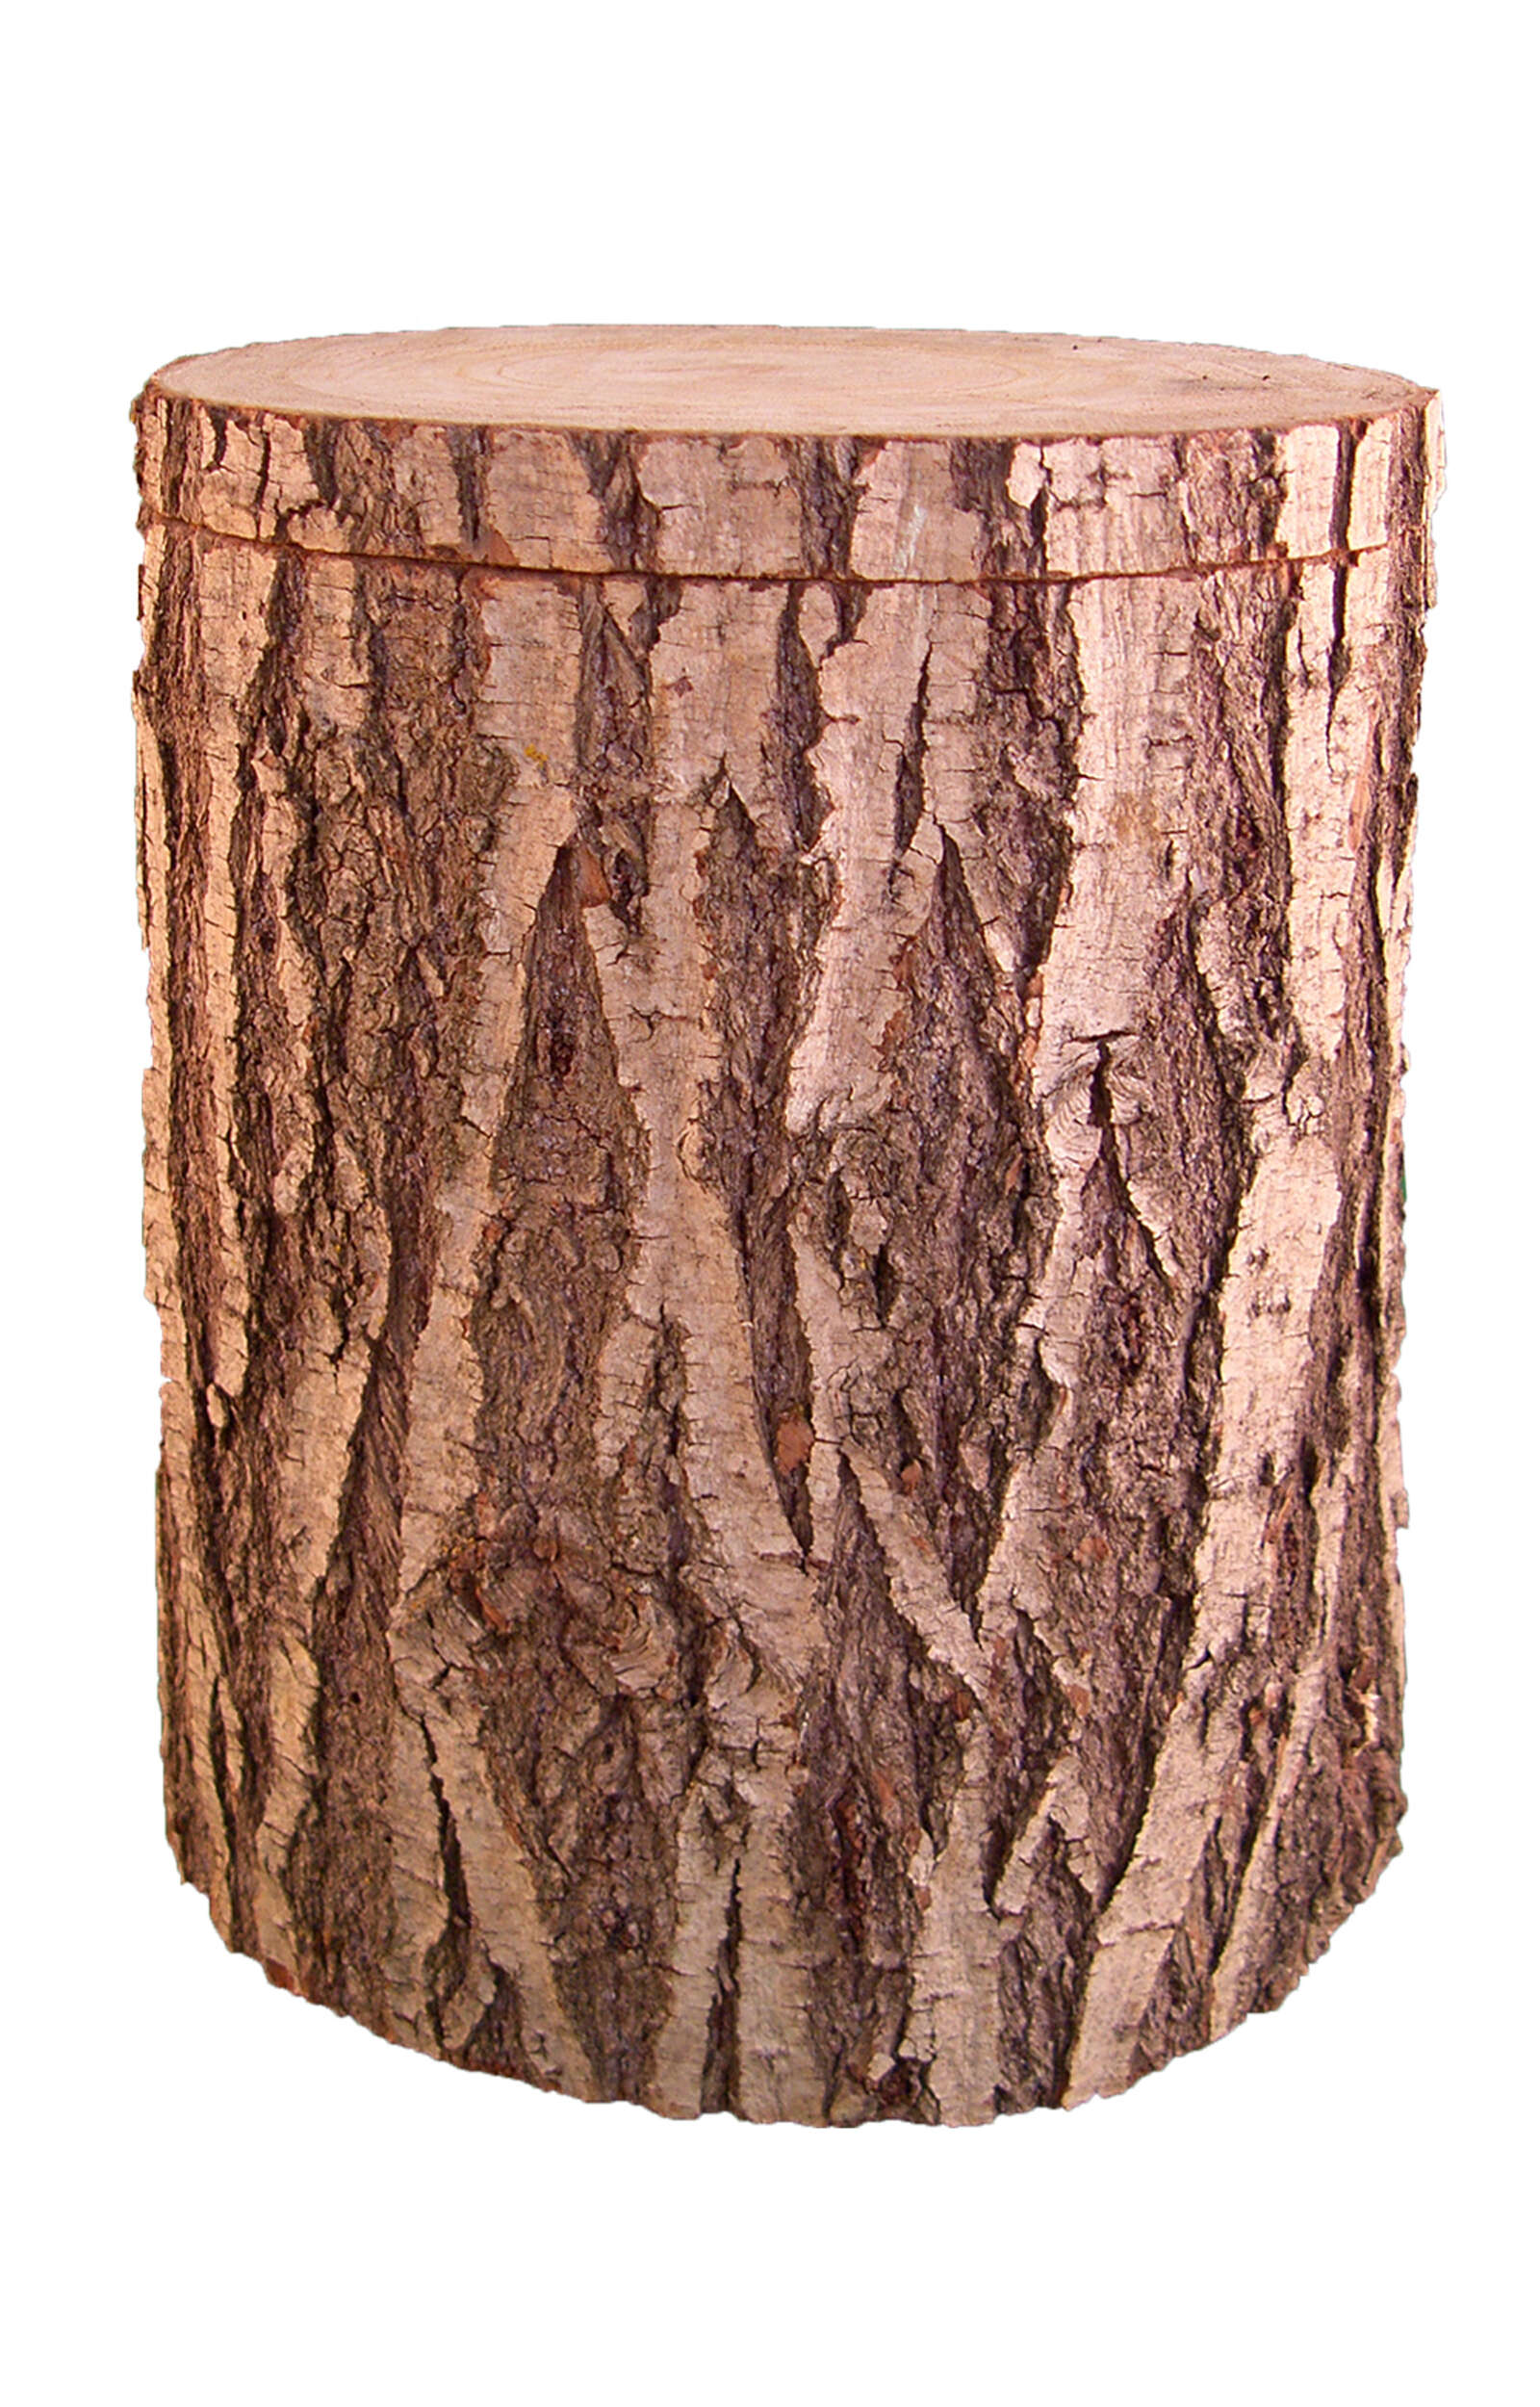 en H2209B tree trunk willow wood urn funeral urns on sale